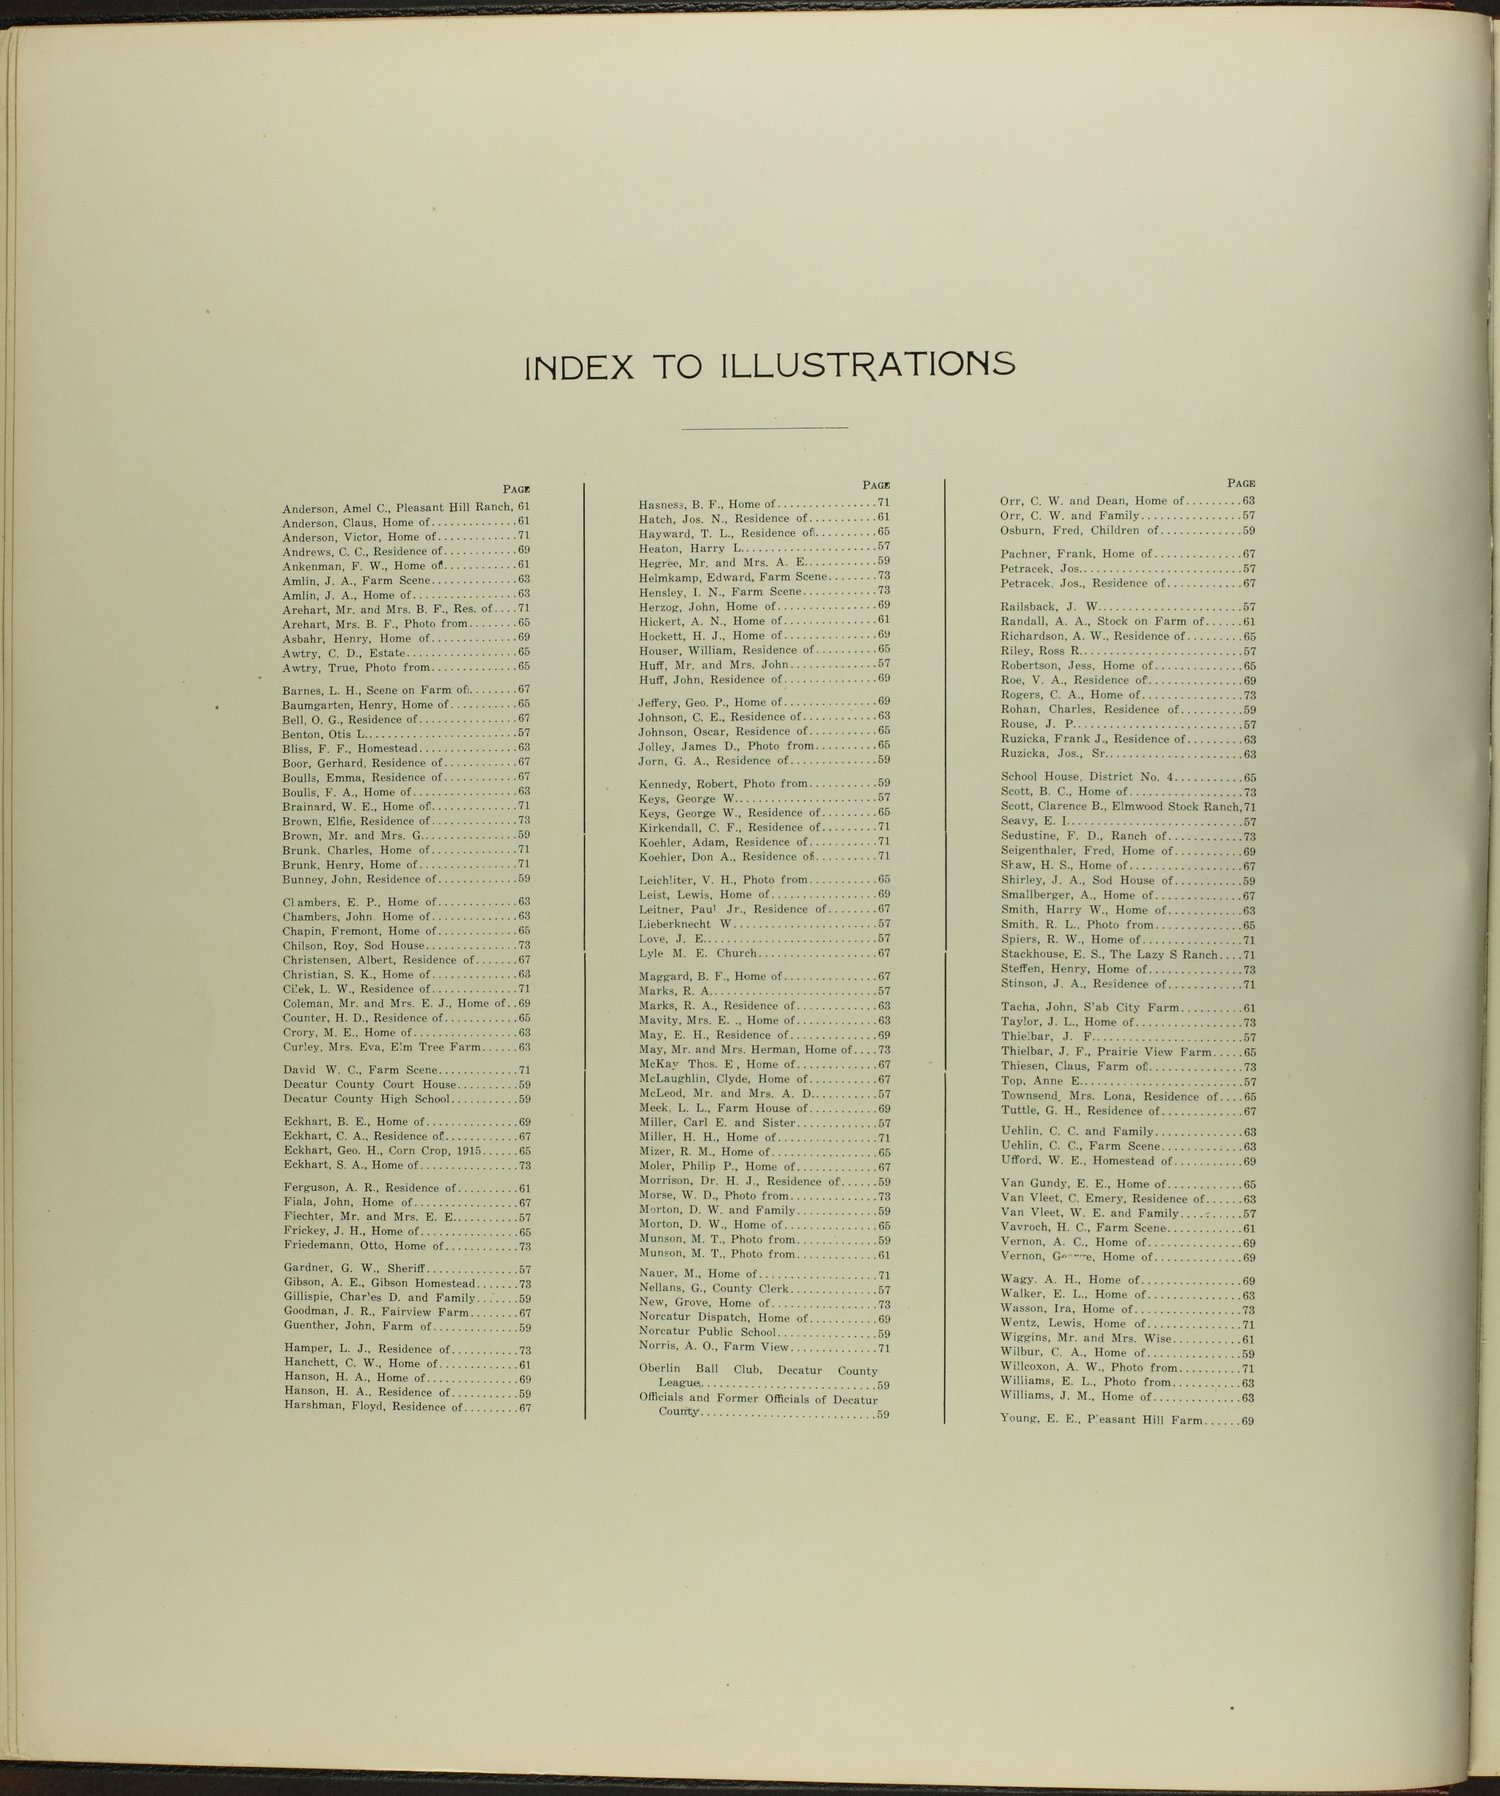 Standard atlas of Decatur County, Kansas - Index to illustrations